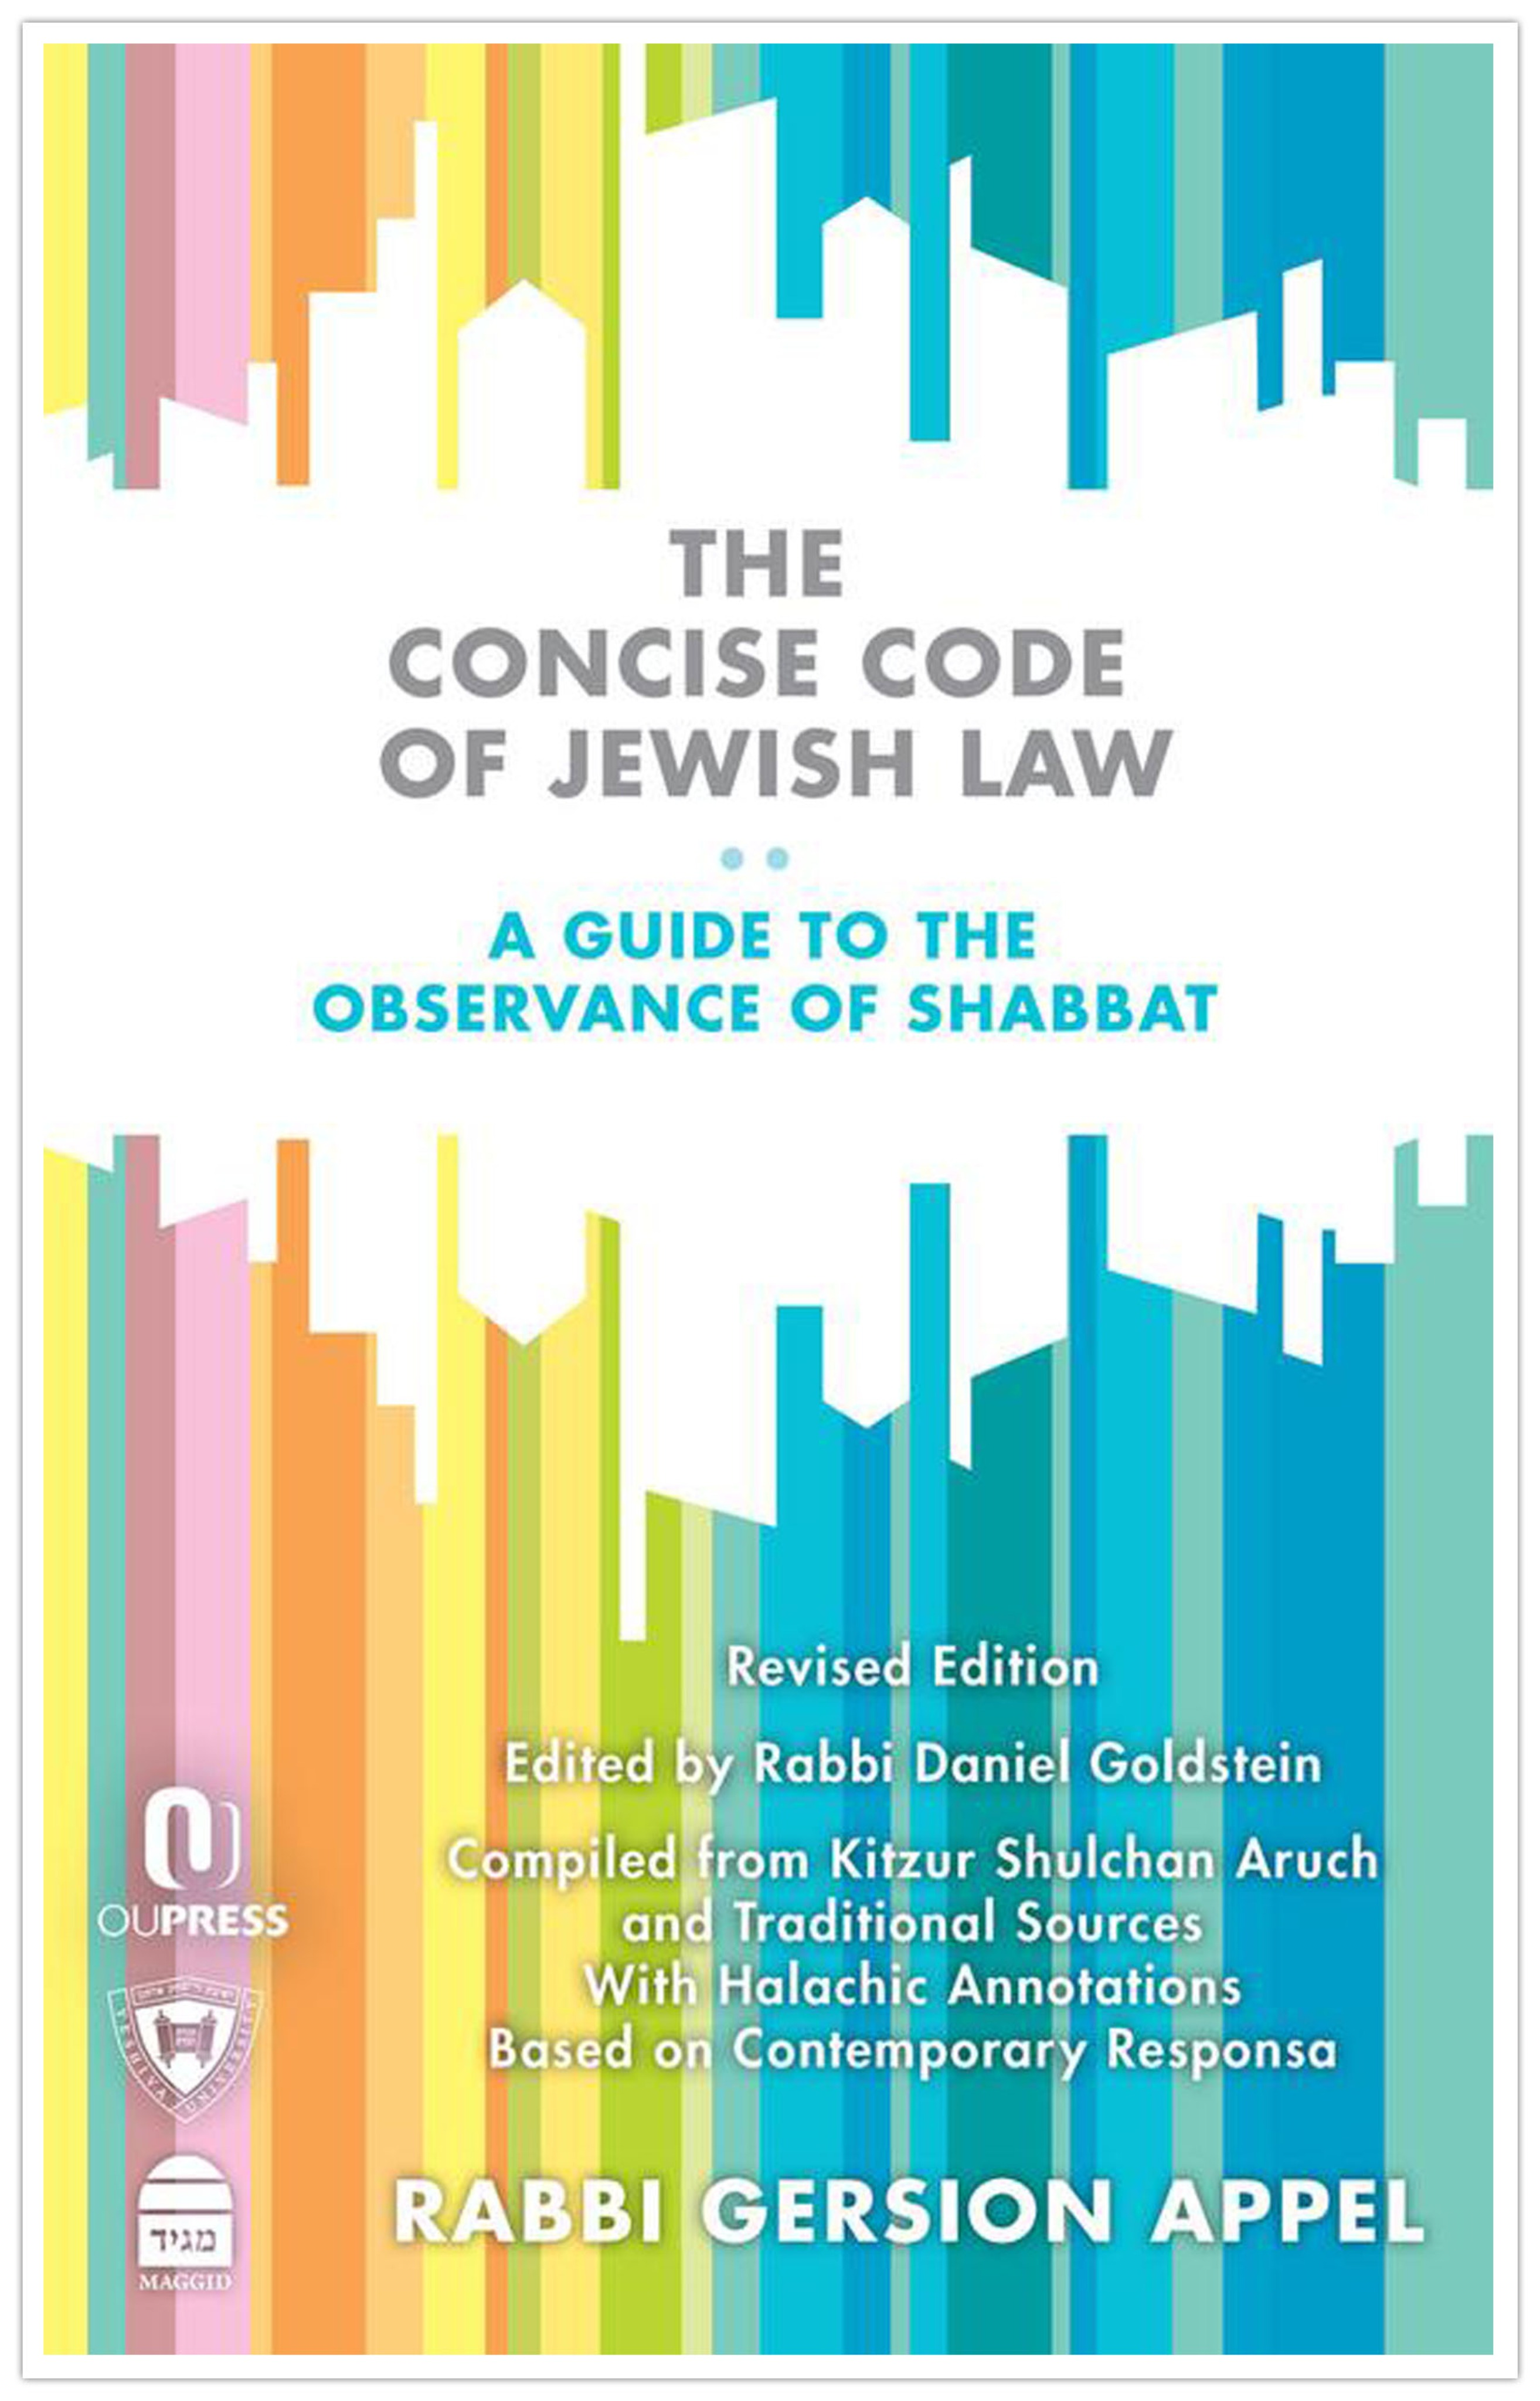 Shabbat: Concise Code of Jewish Law